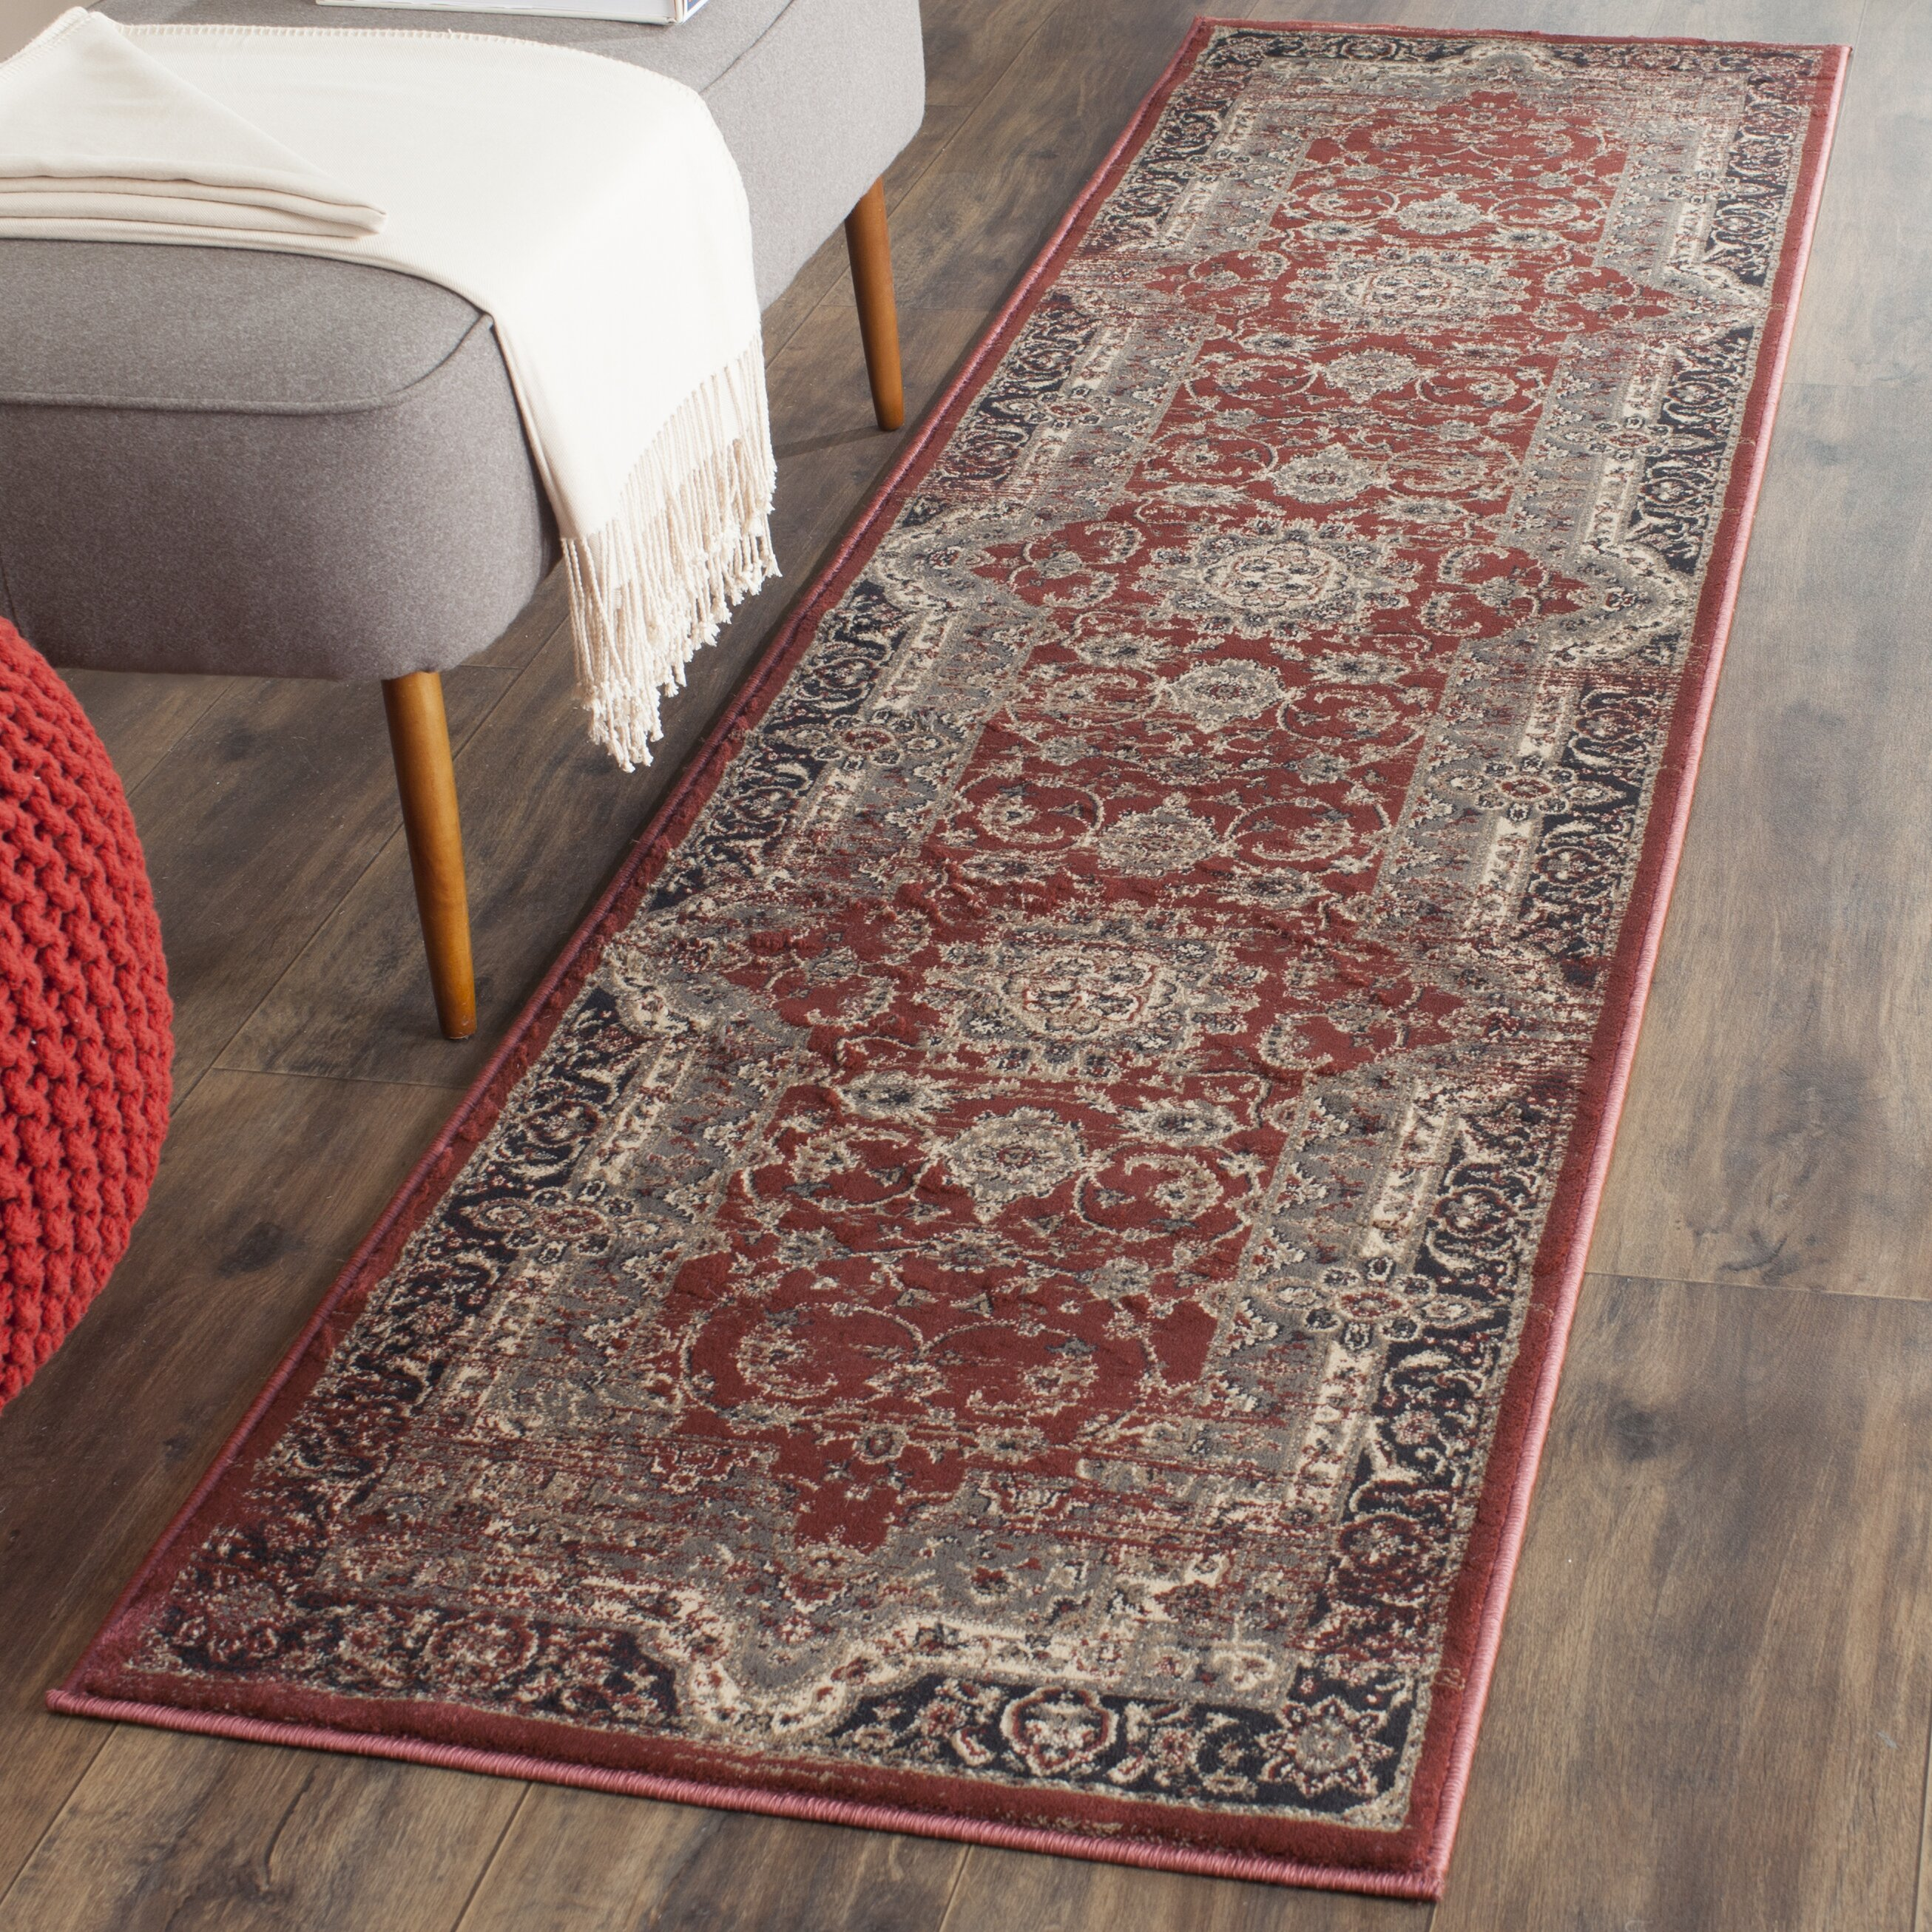 Safavieh Vintage Rust Black Area Rug Amp Reviews Wayfair